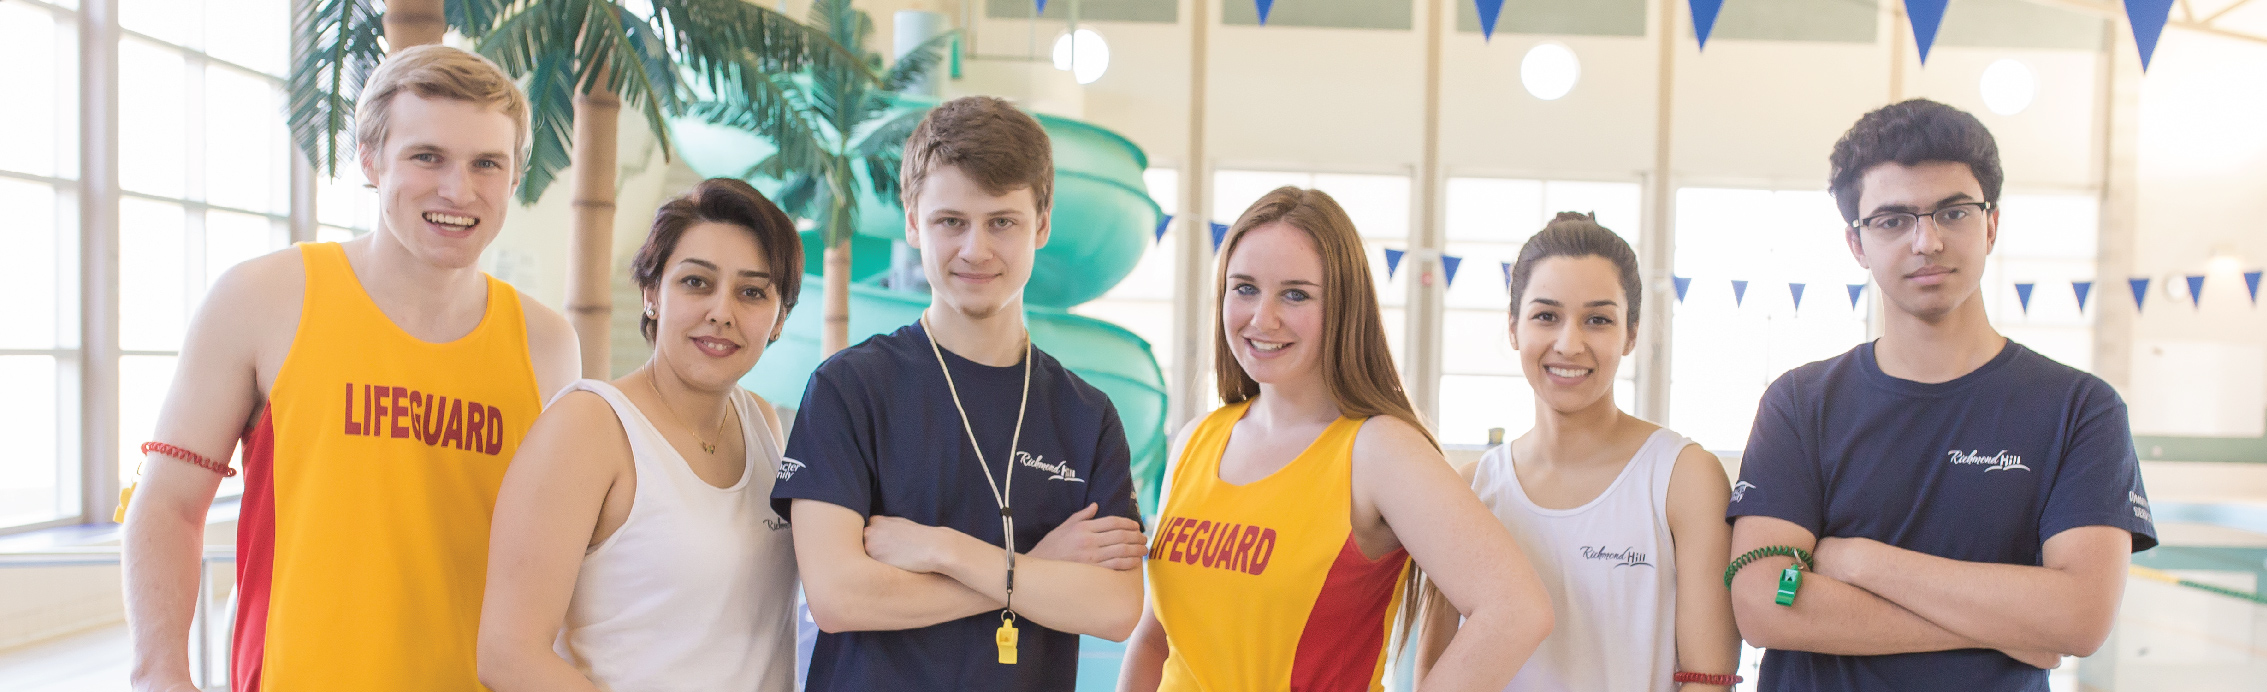 Image of Lifeguards